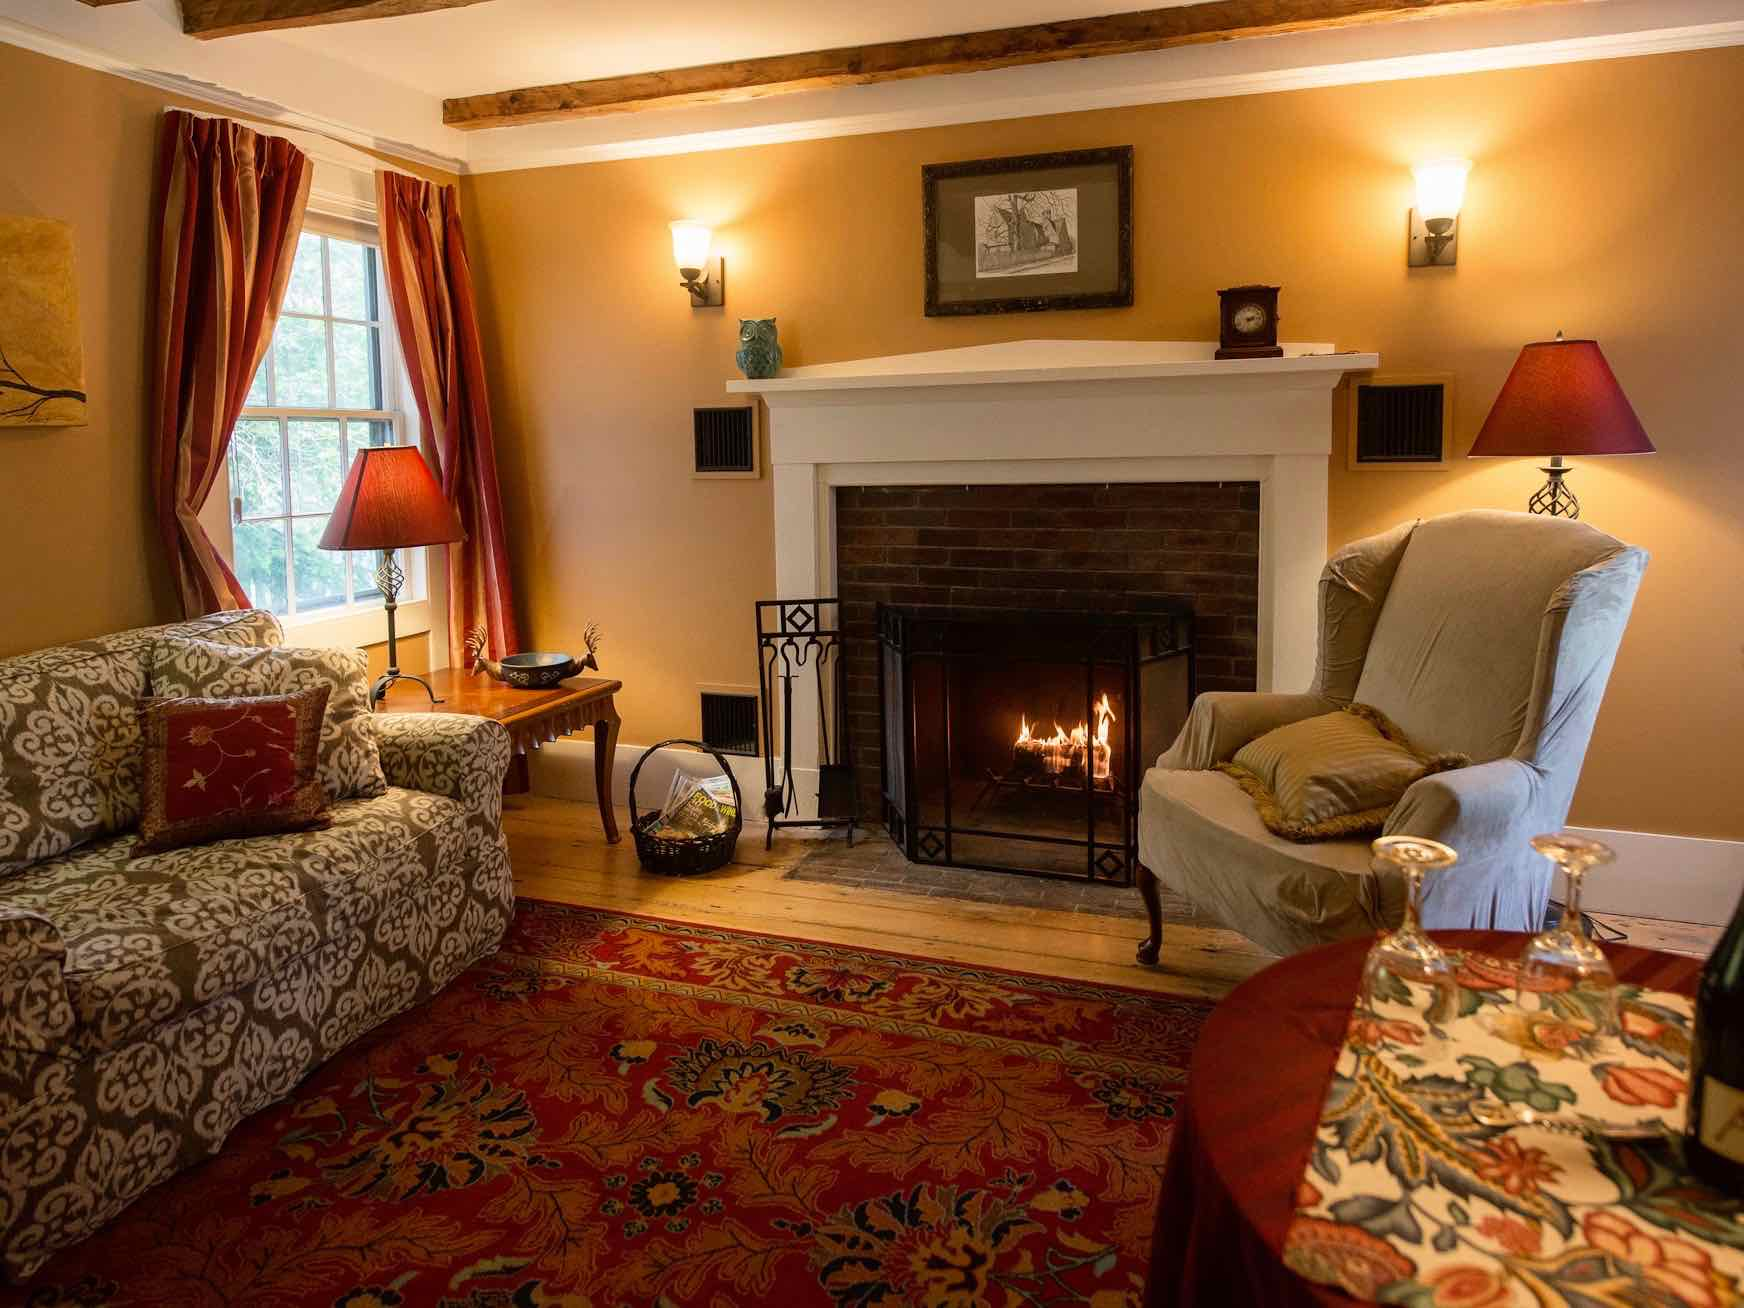 Thumbnail photo of Tavern Suite sitting room with fireplace